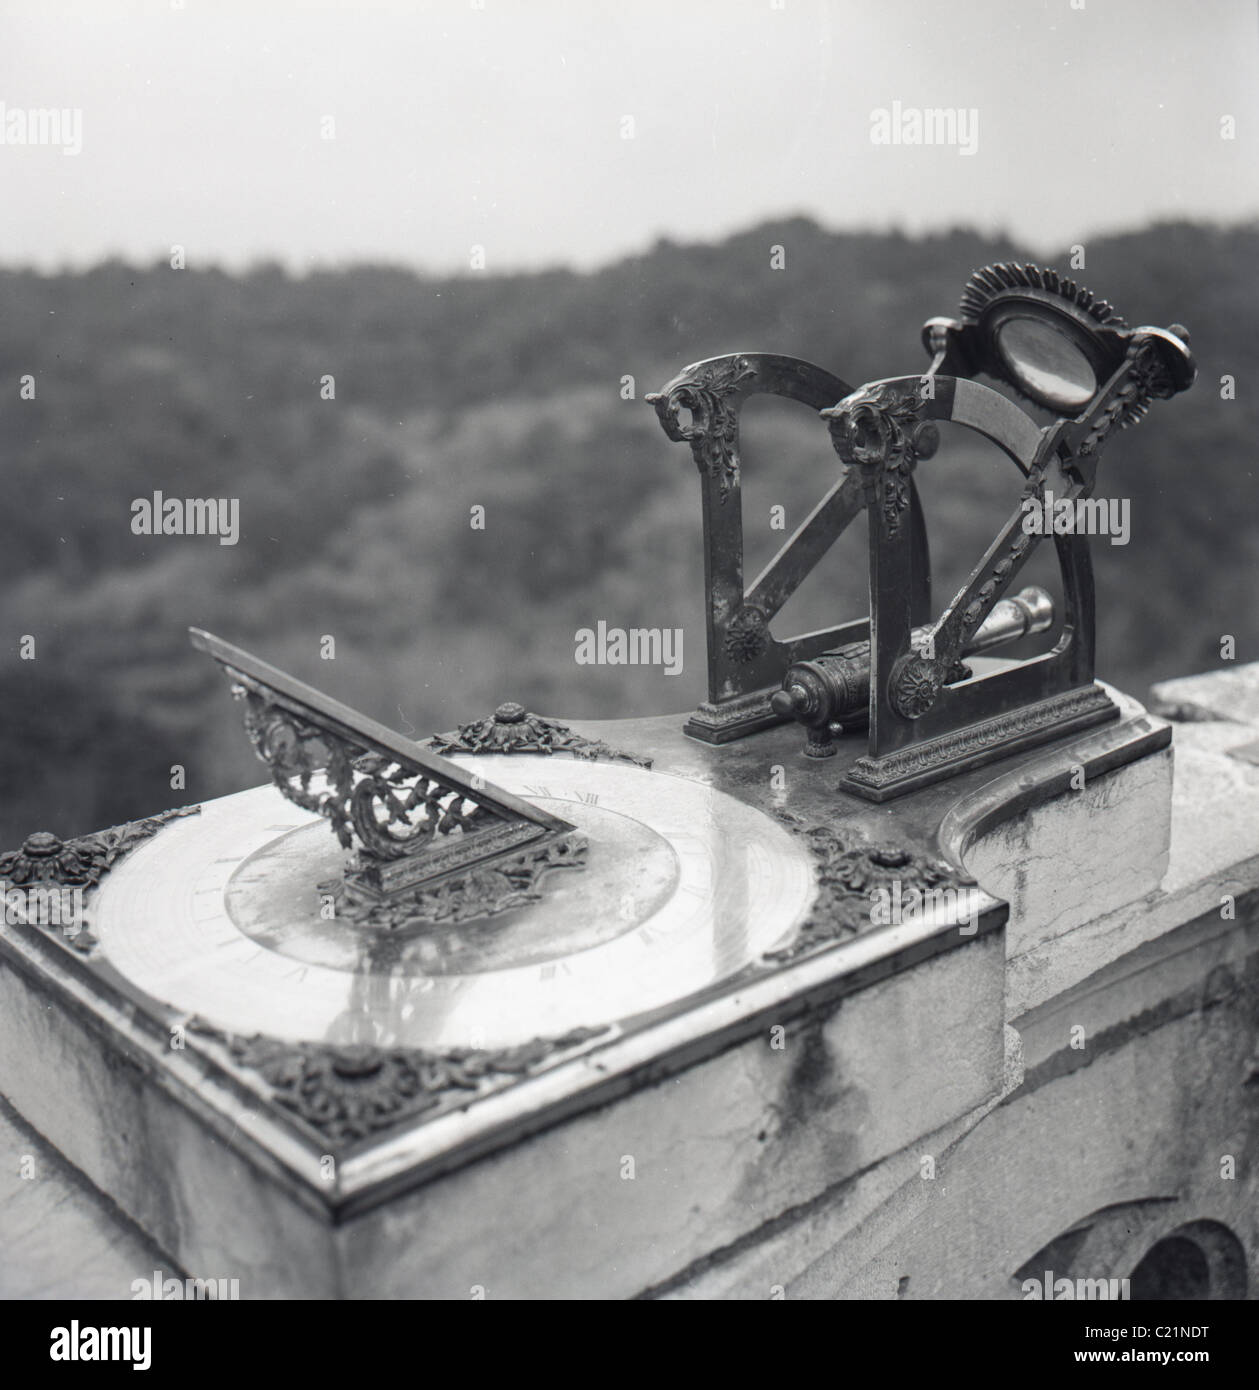 1950s, Portugal. Close-up of a sundial. - Stock Image